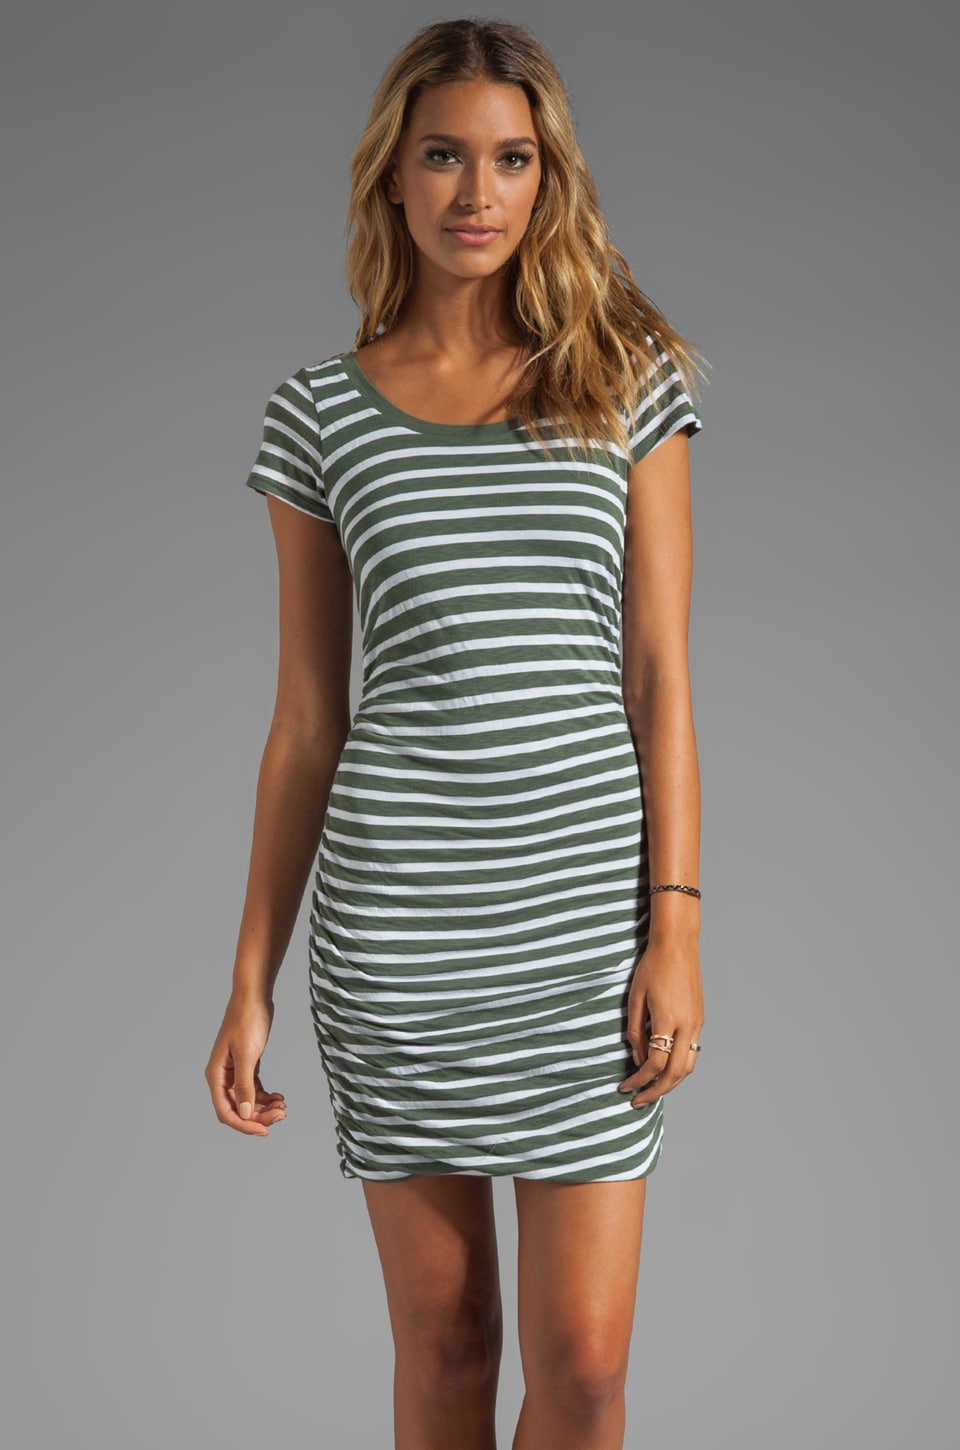 Splendid Short Sleeve Stripe Dress in Camo Green